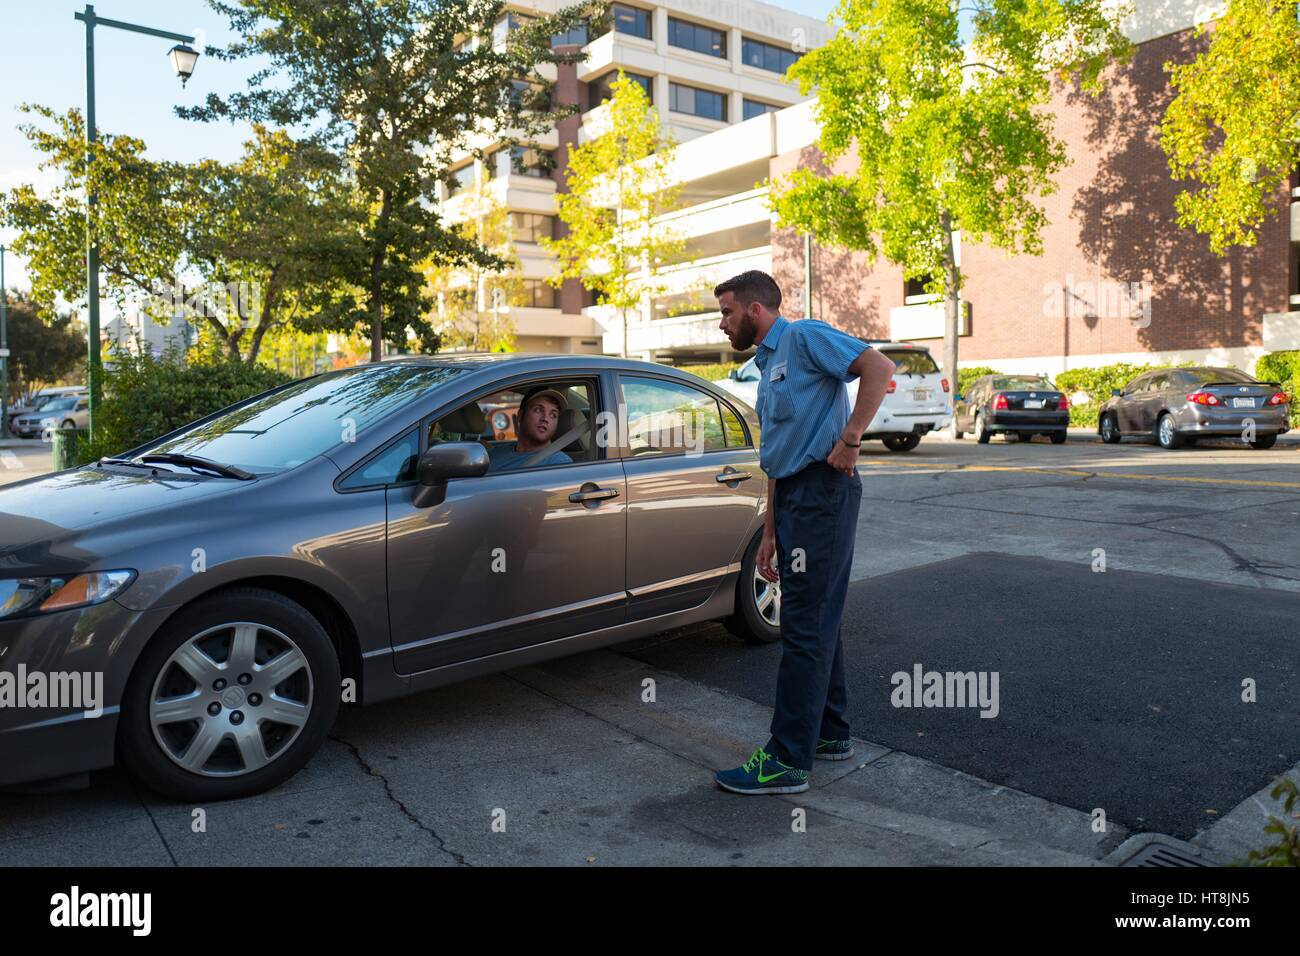 A Honda automobile service adviser speaks with a driver as he pulls